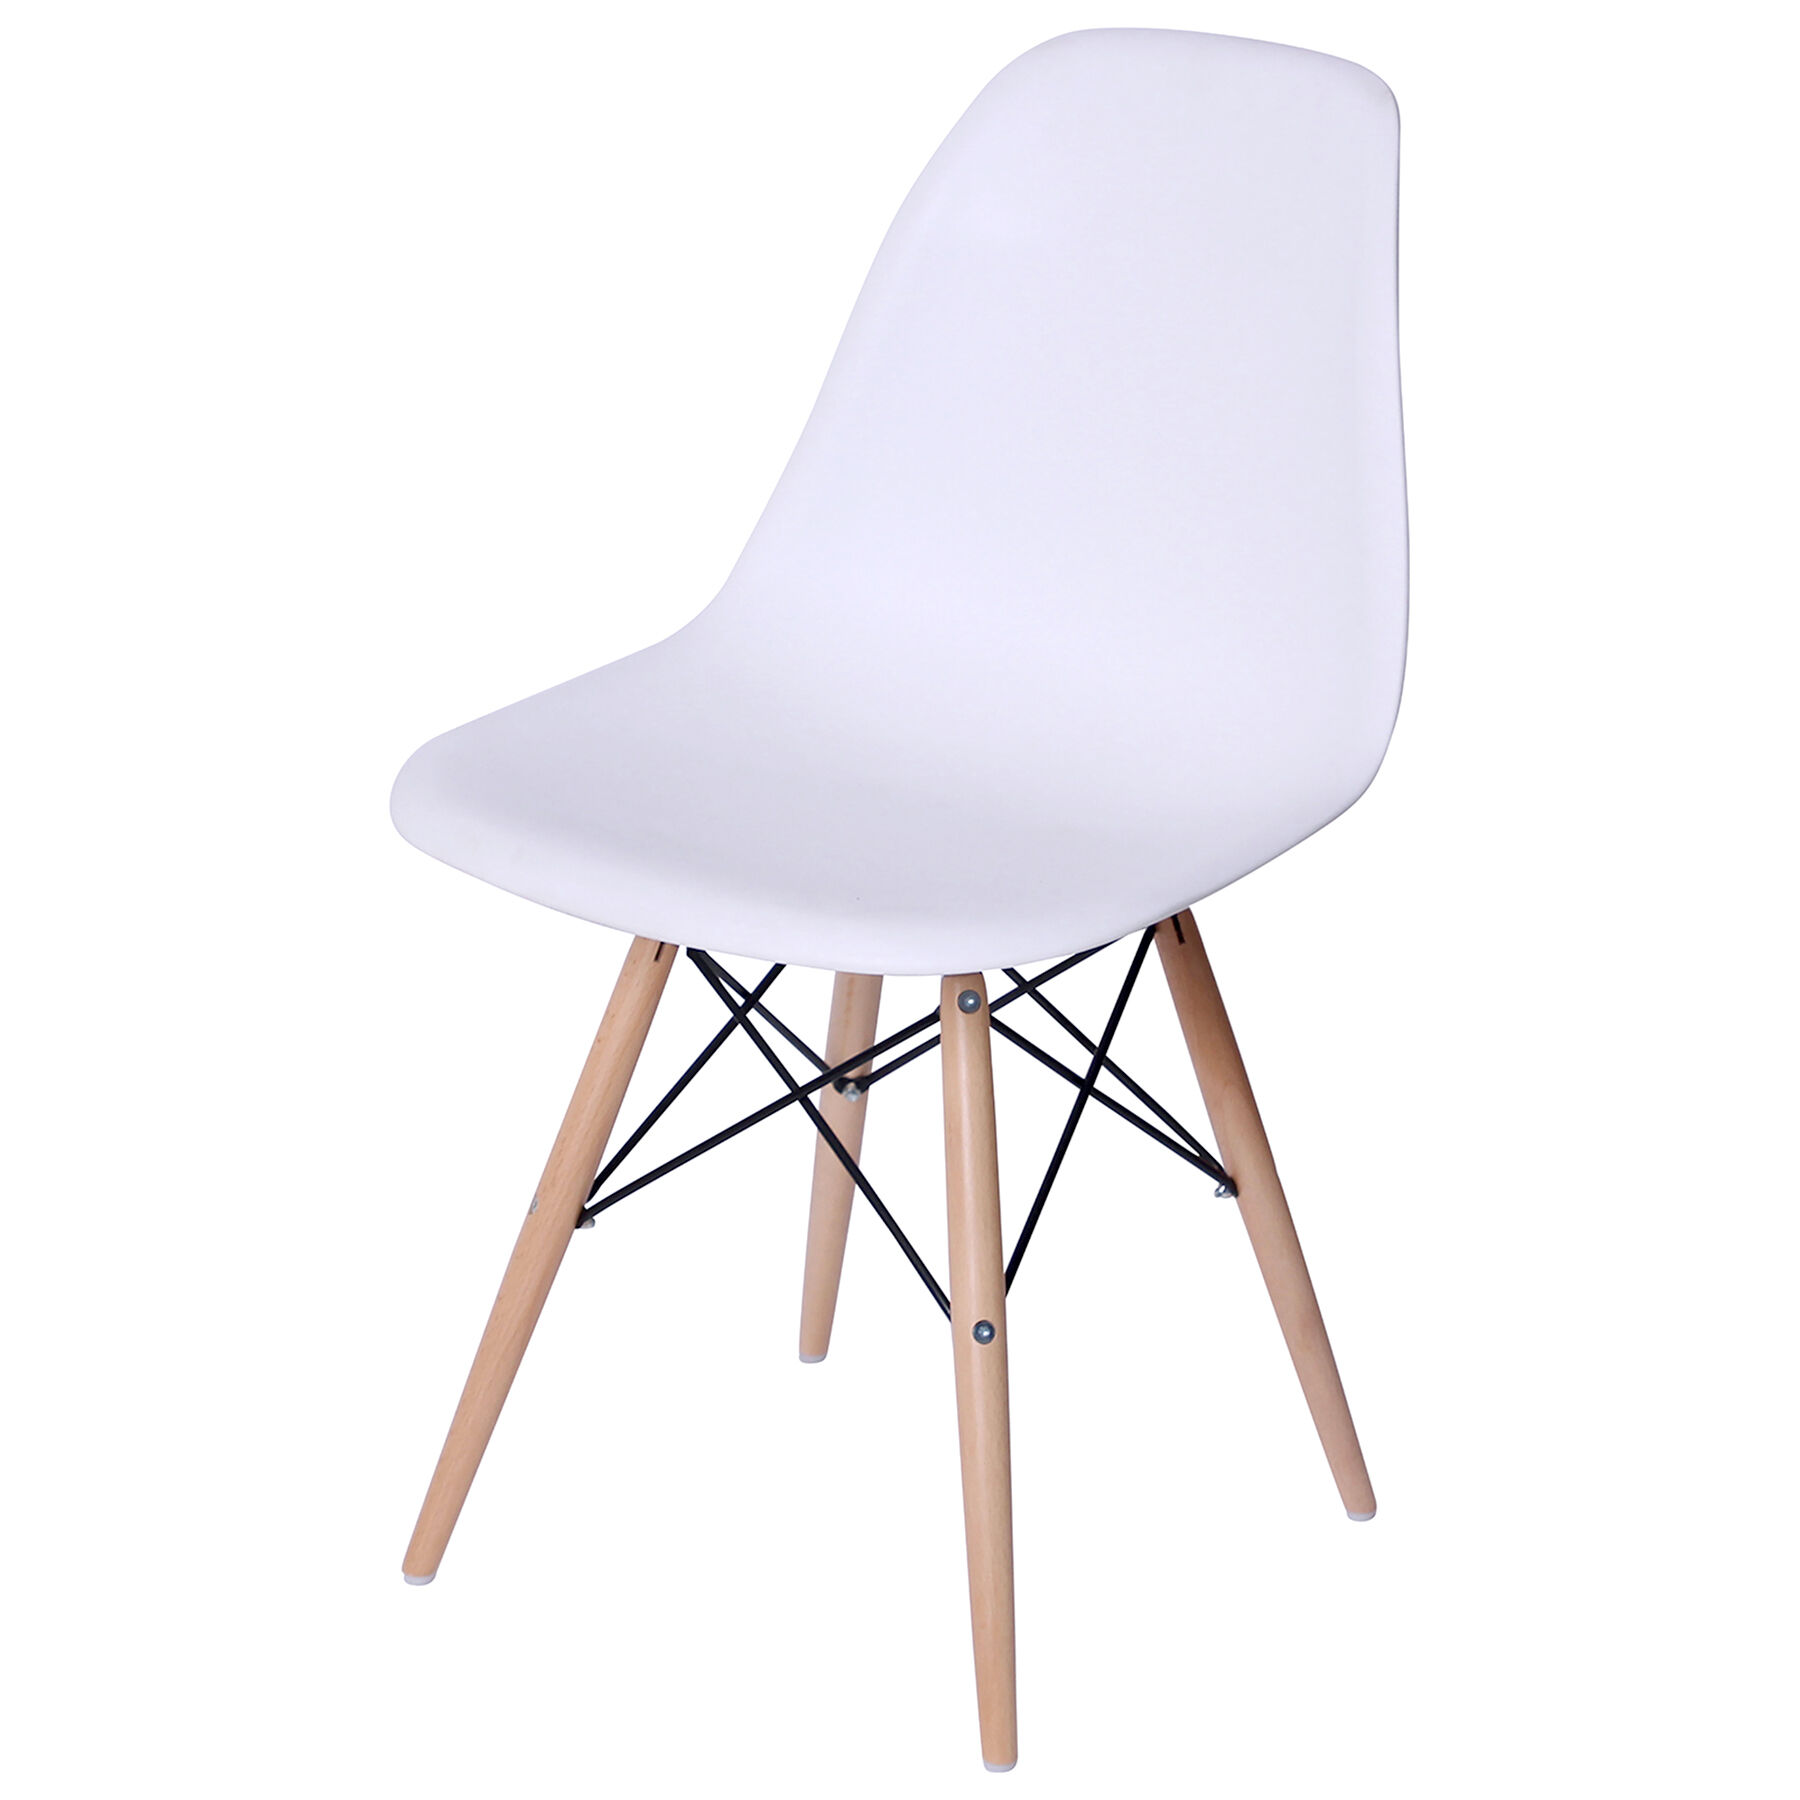 eiffel chair wood legs children s beach with umbrella white at home images